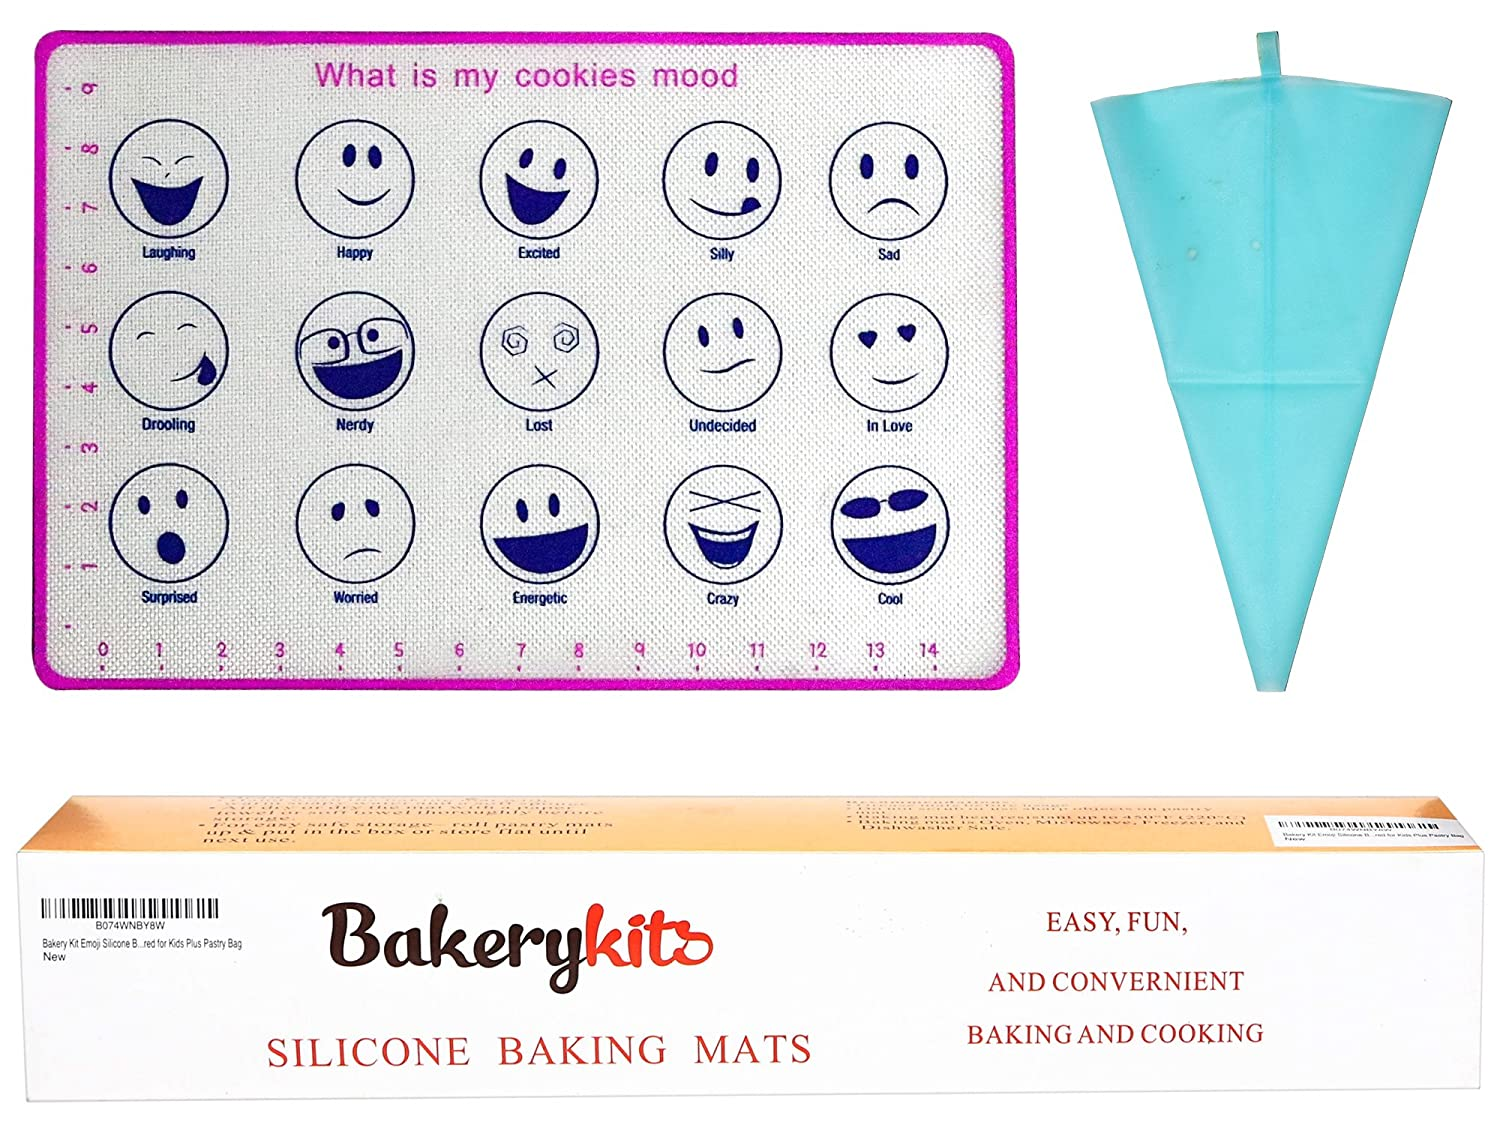 cookies are just for you. If you are the kind of person who enjoy cooking and love doing it with his kids this Non-Stick Liner Silicone Baking mat emojis plus silicone pastry bag for macarons